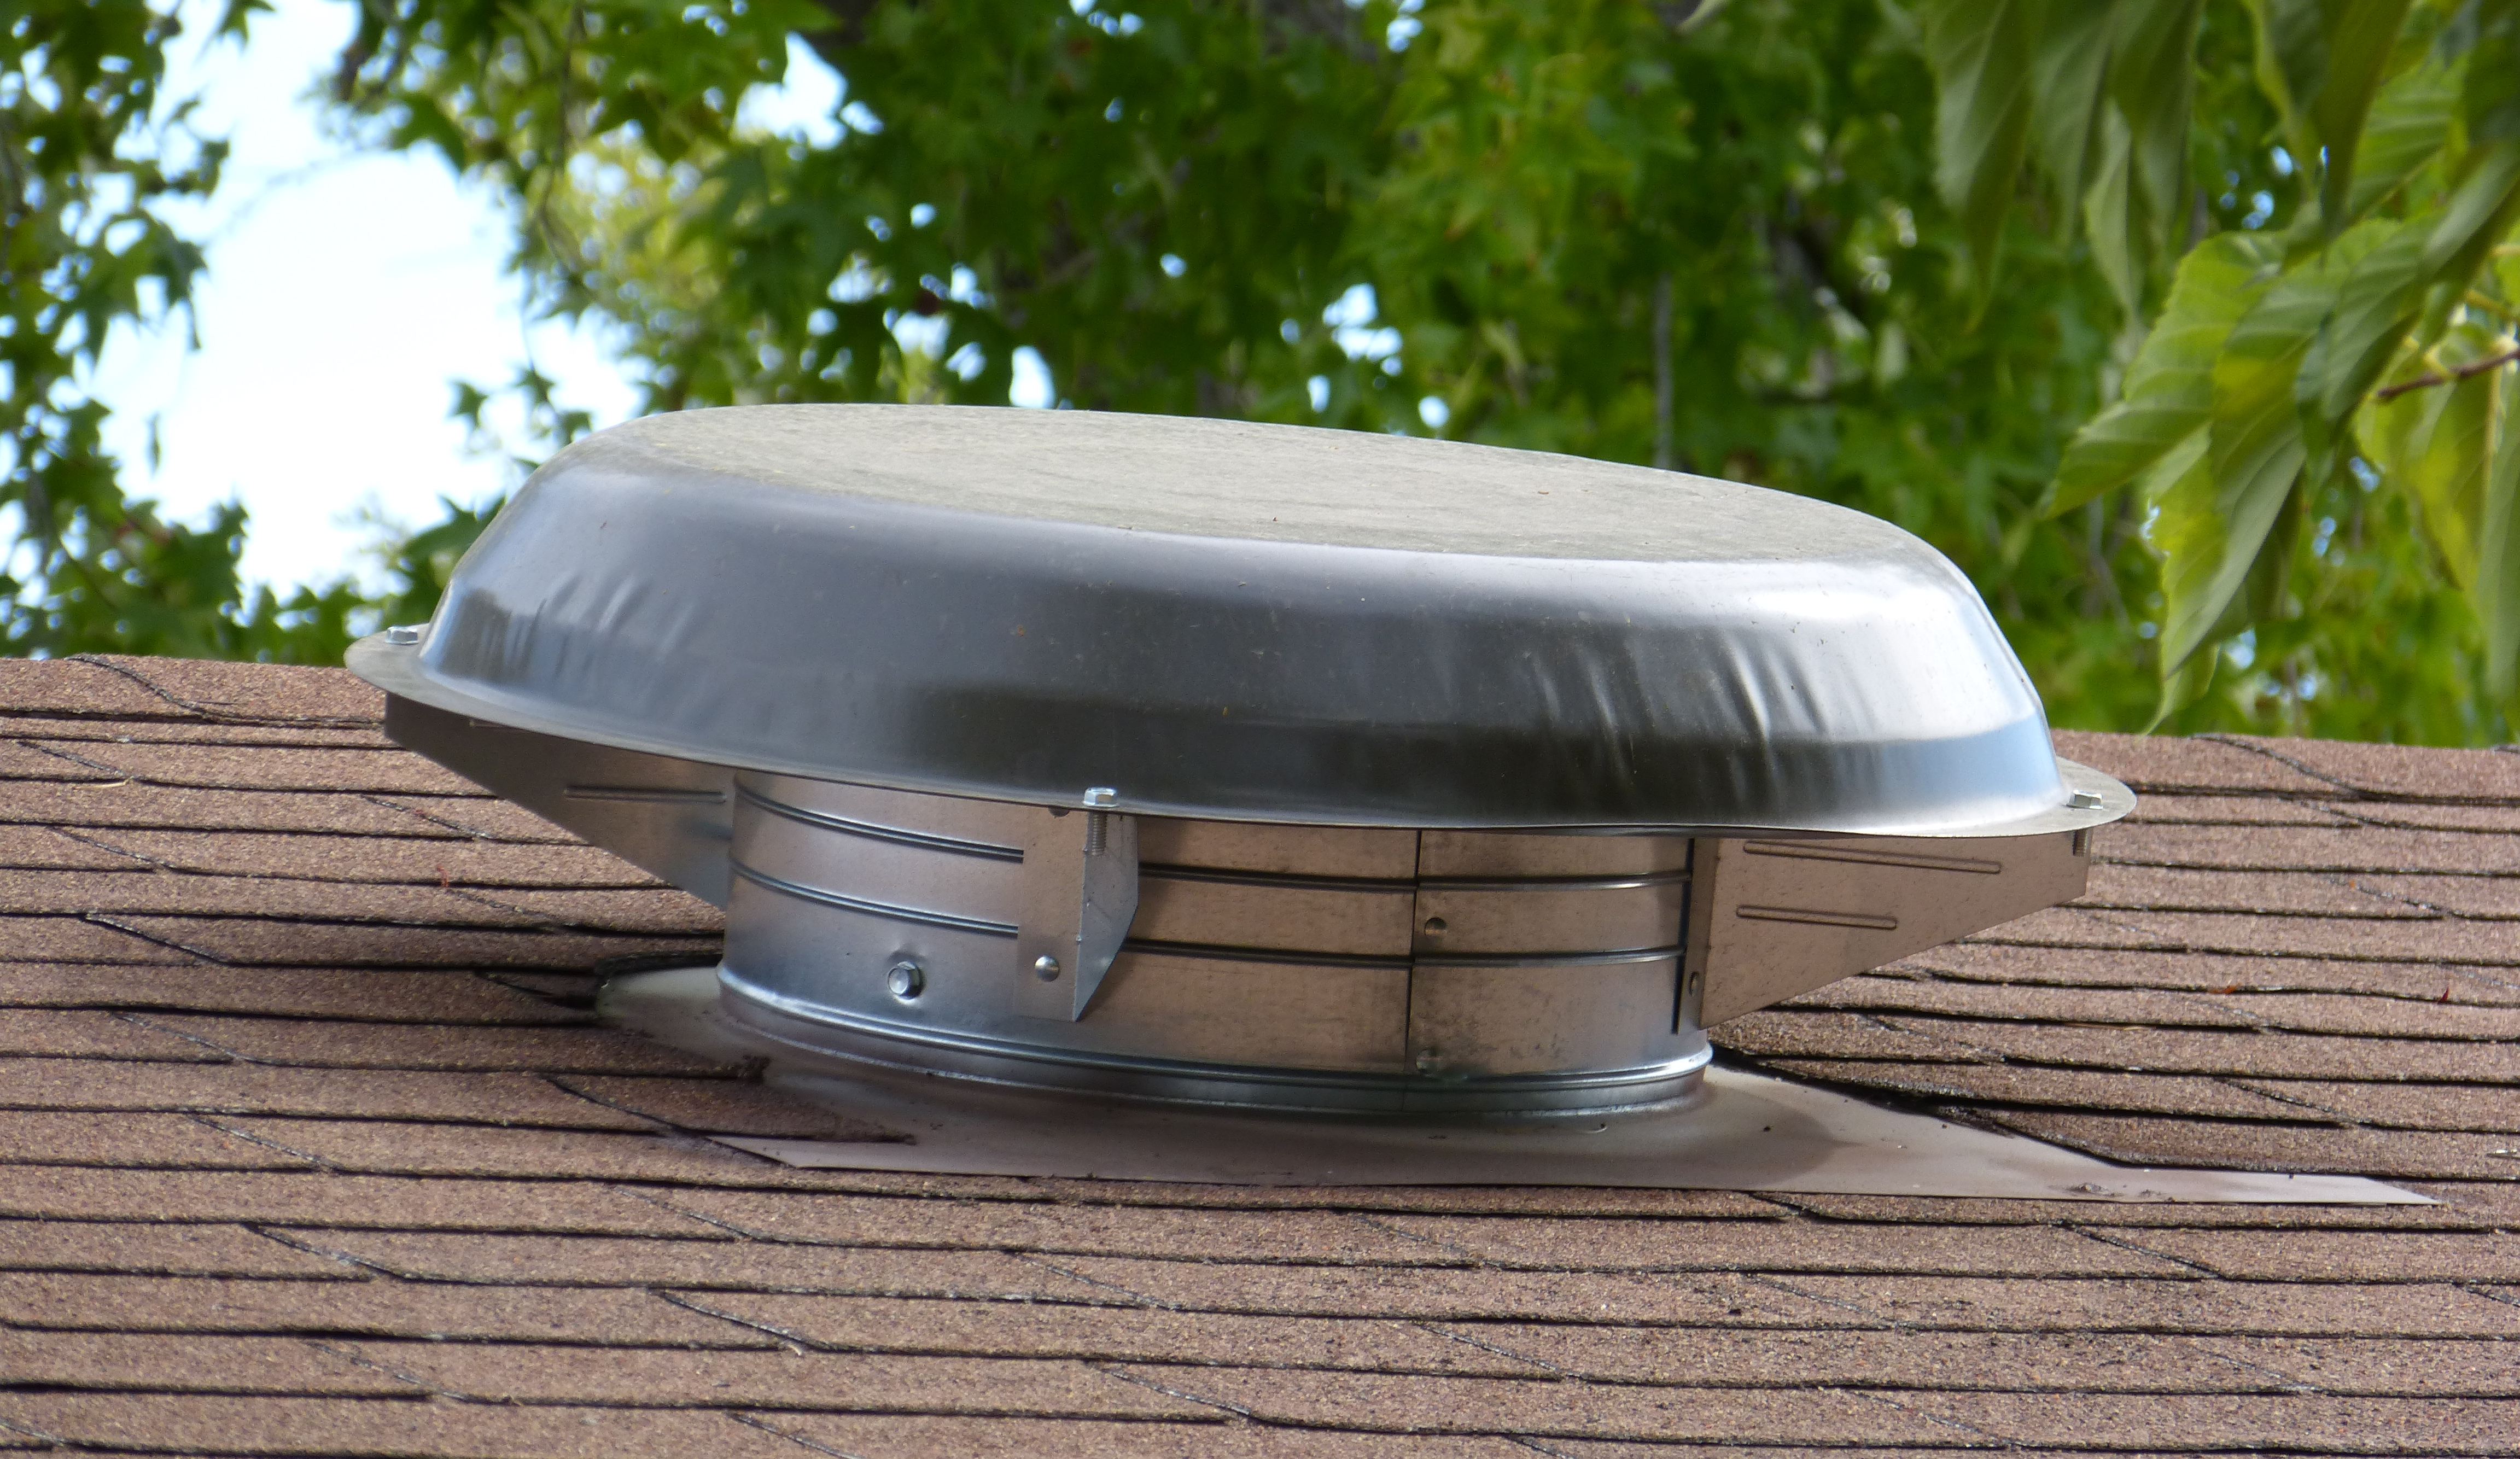 Attic Fan Cover Replacement Amazing New Ceiling Fan Or Light in dimensions 4608 X 2668